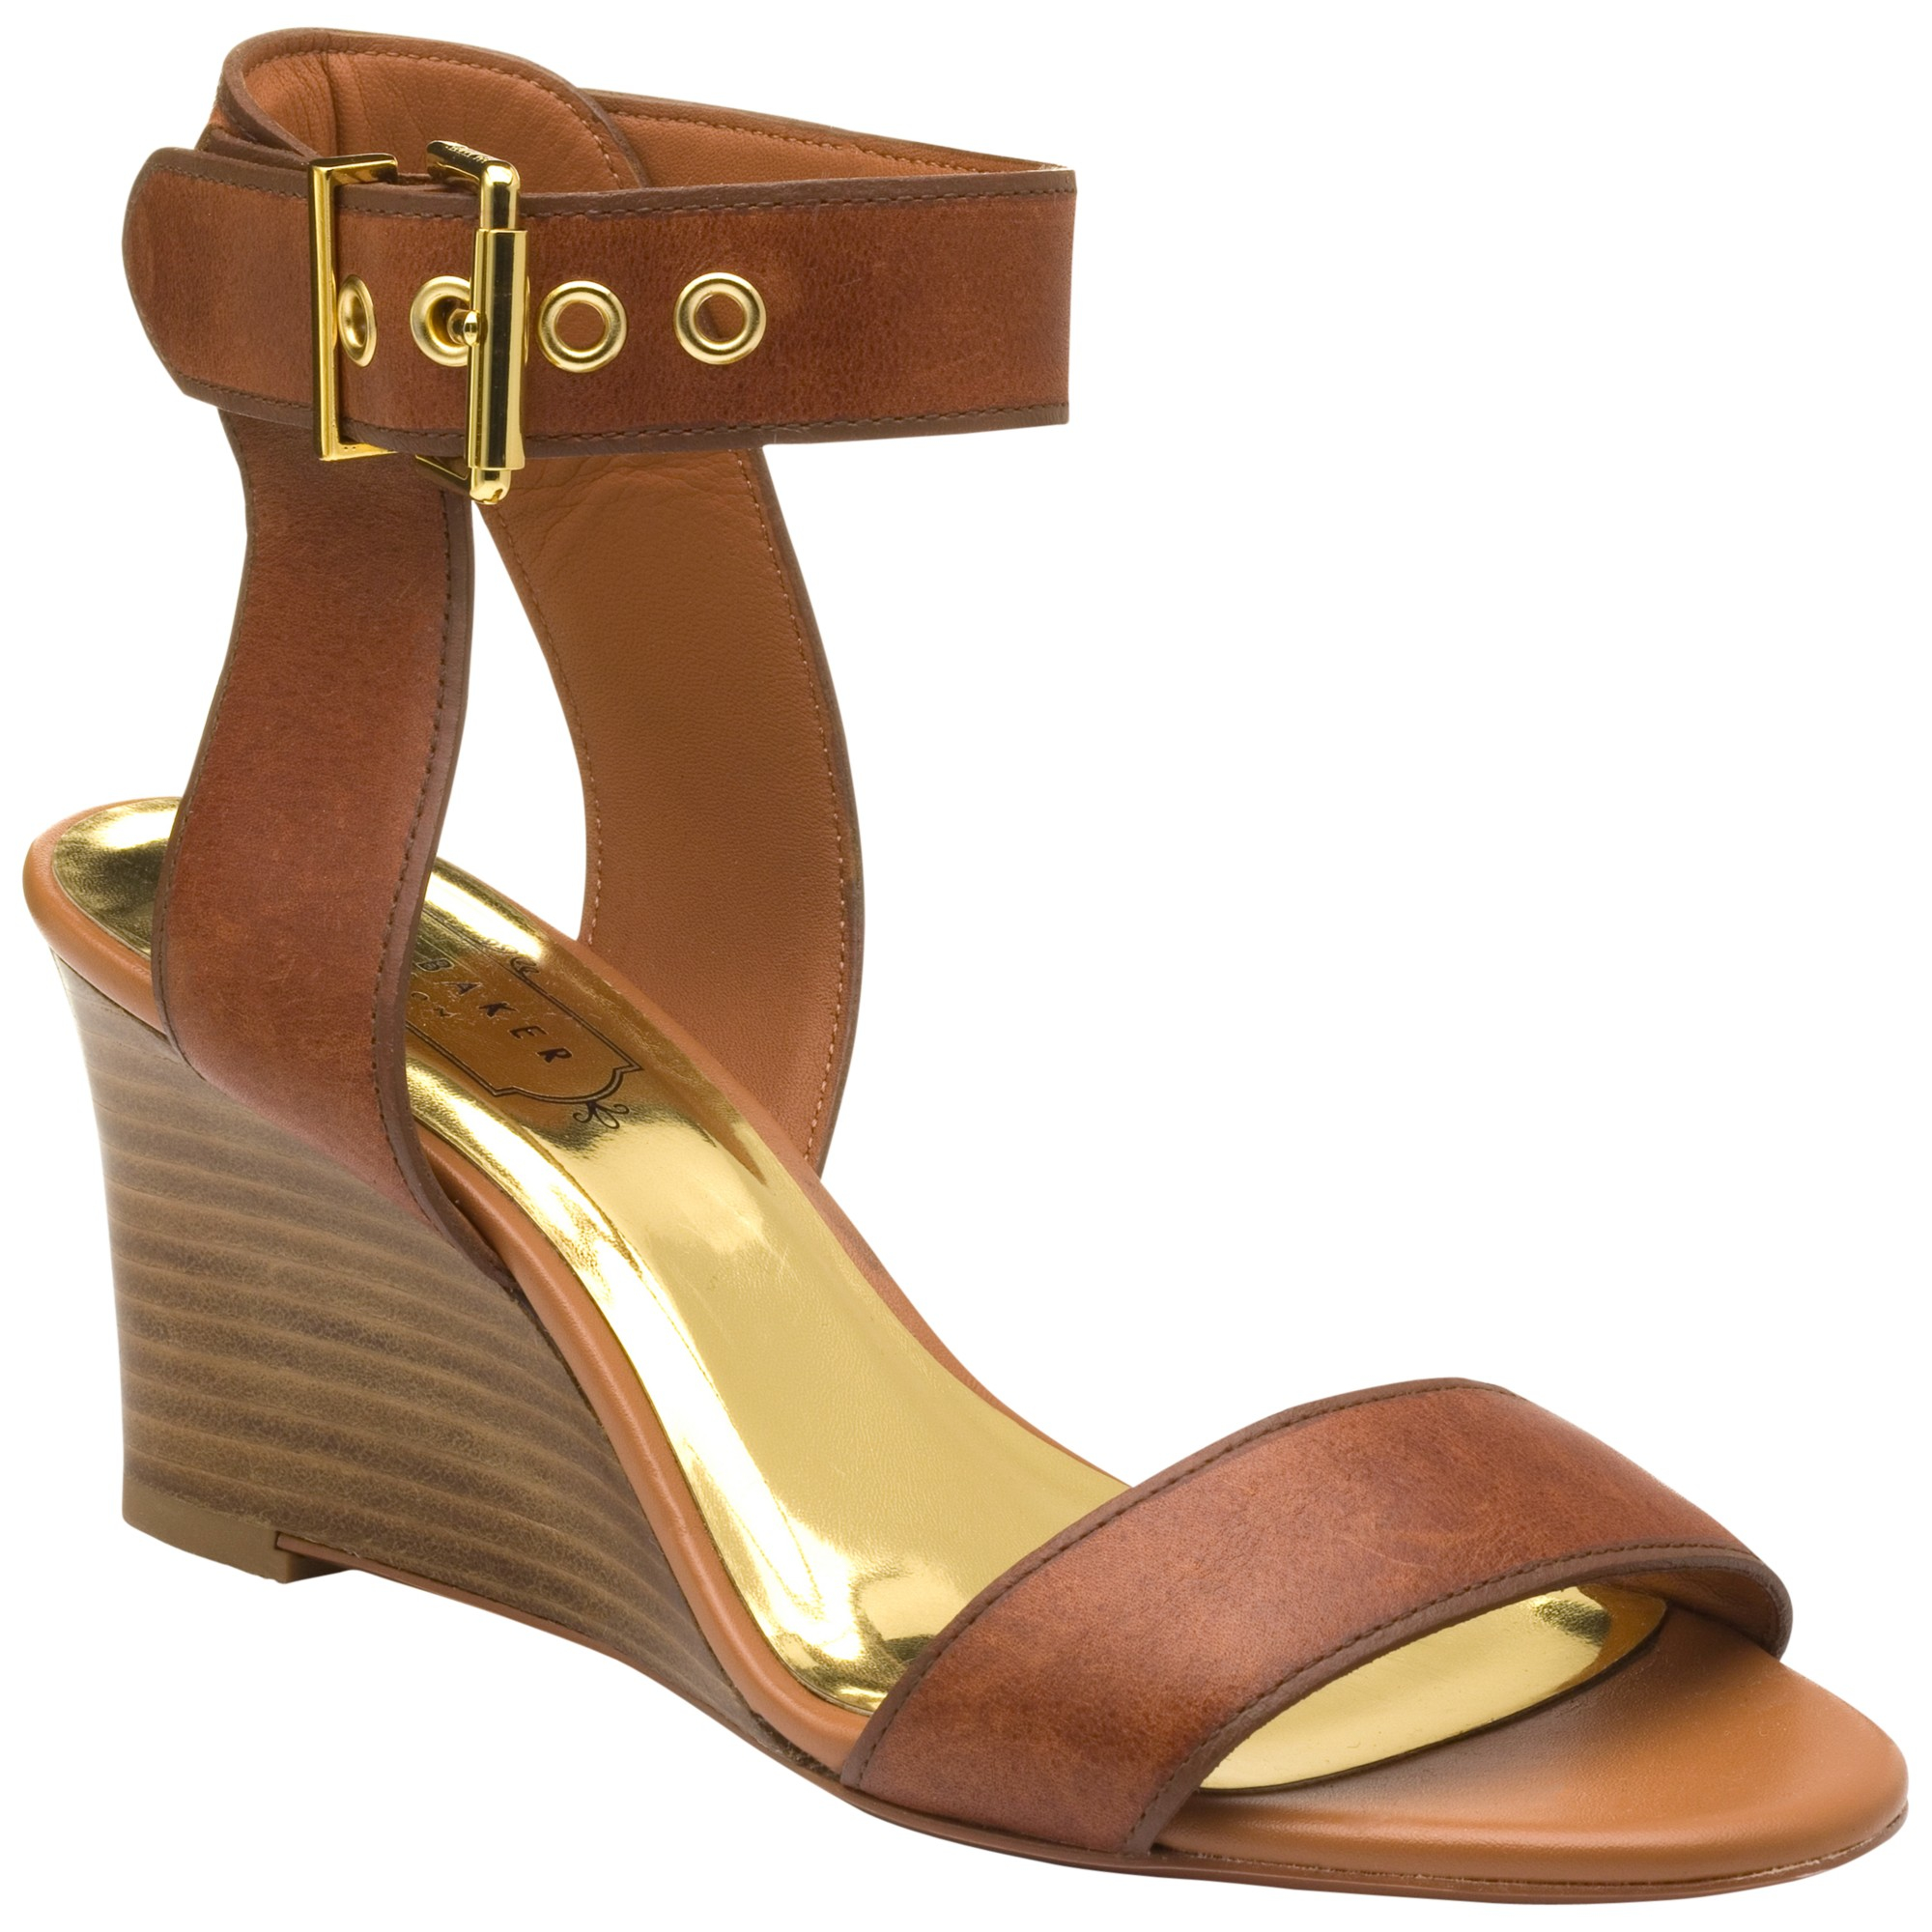 5f81bd5fd7d3 Ted Baker Lernox Wedge Sandals in Brown - Lyst